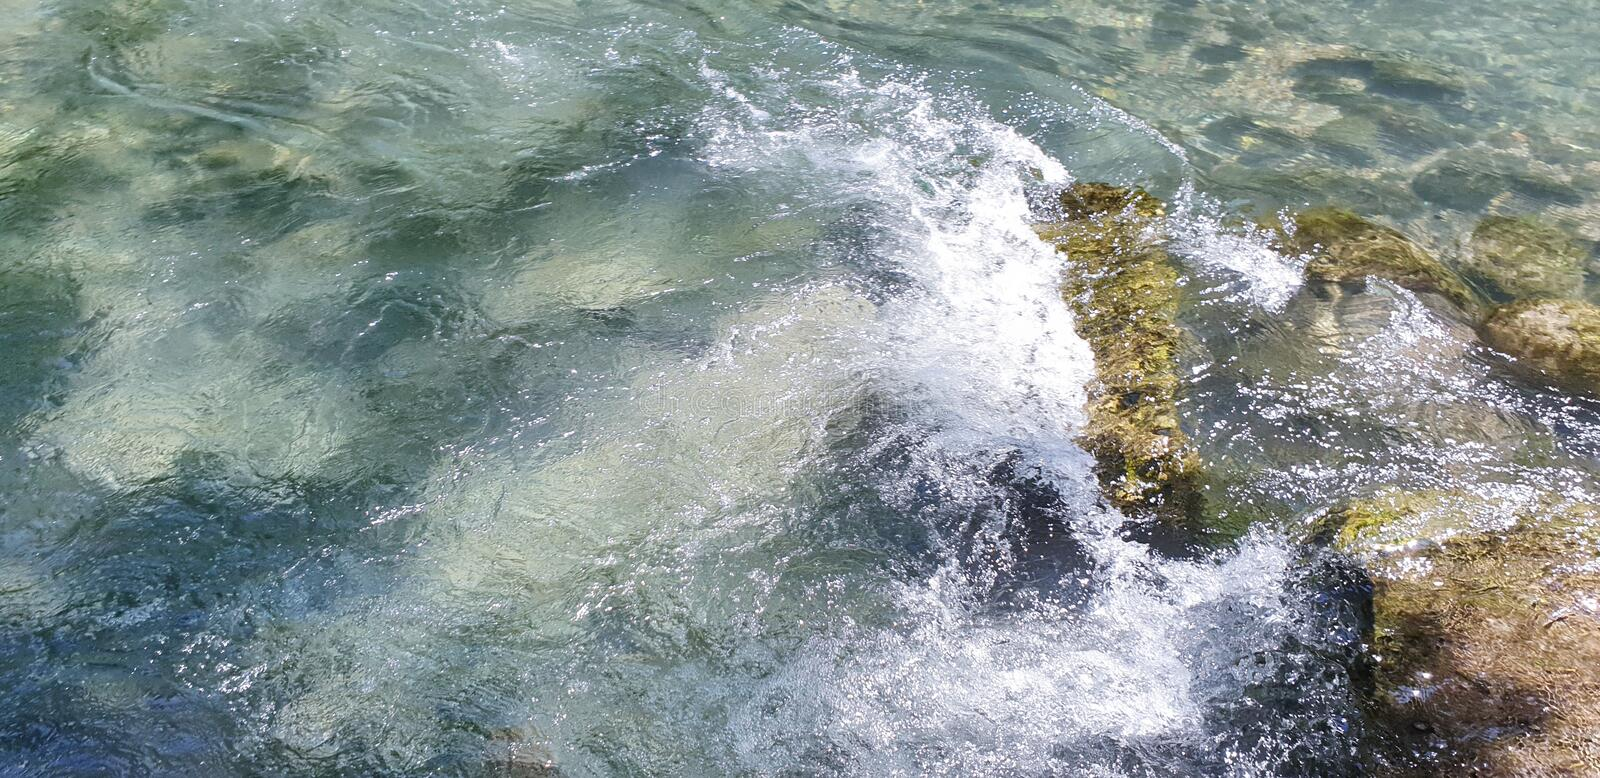 Waves in water crashing on stones stock photo